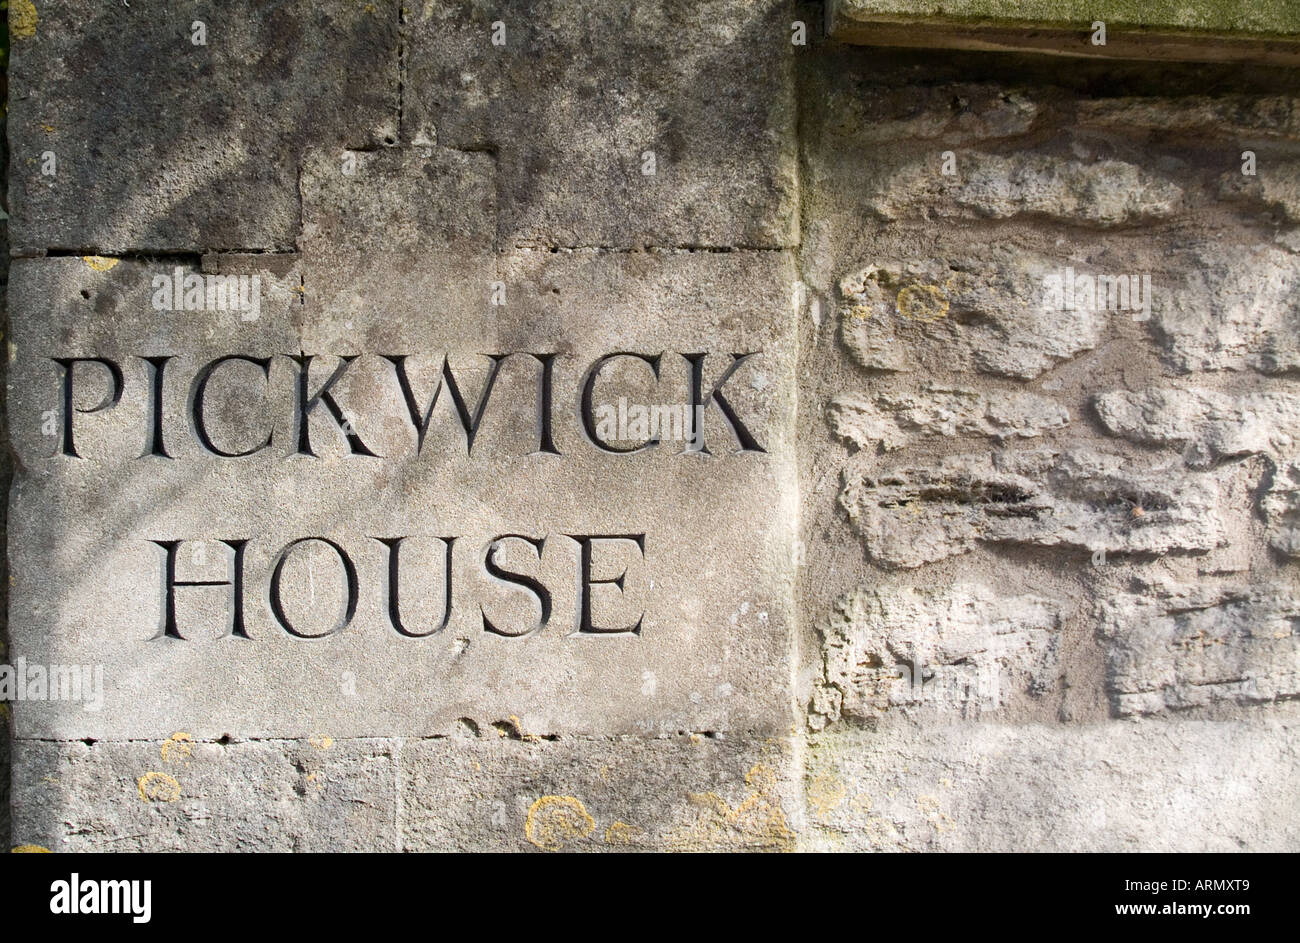 A stone house sign for Pickwick House in Corsham. Stock Photo